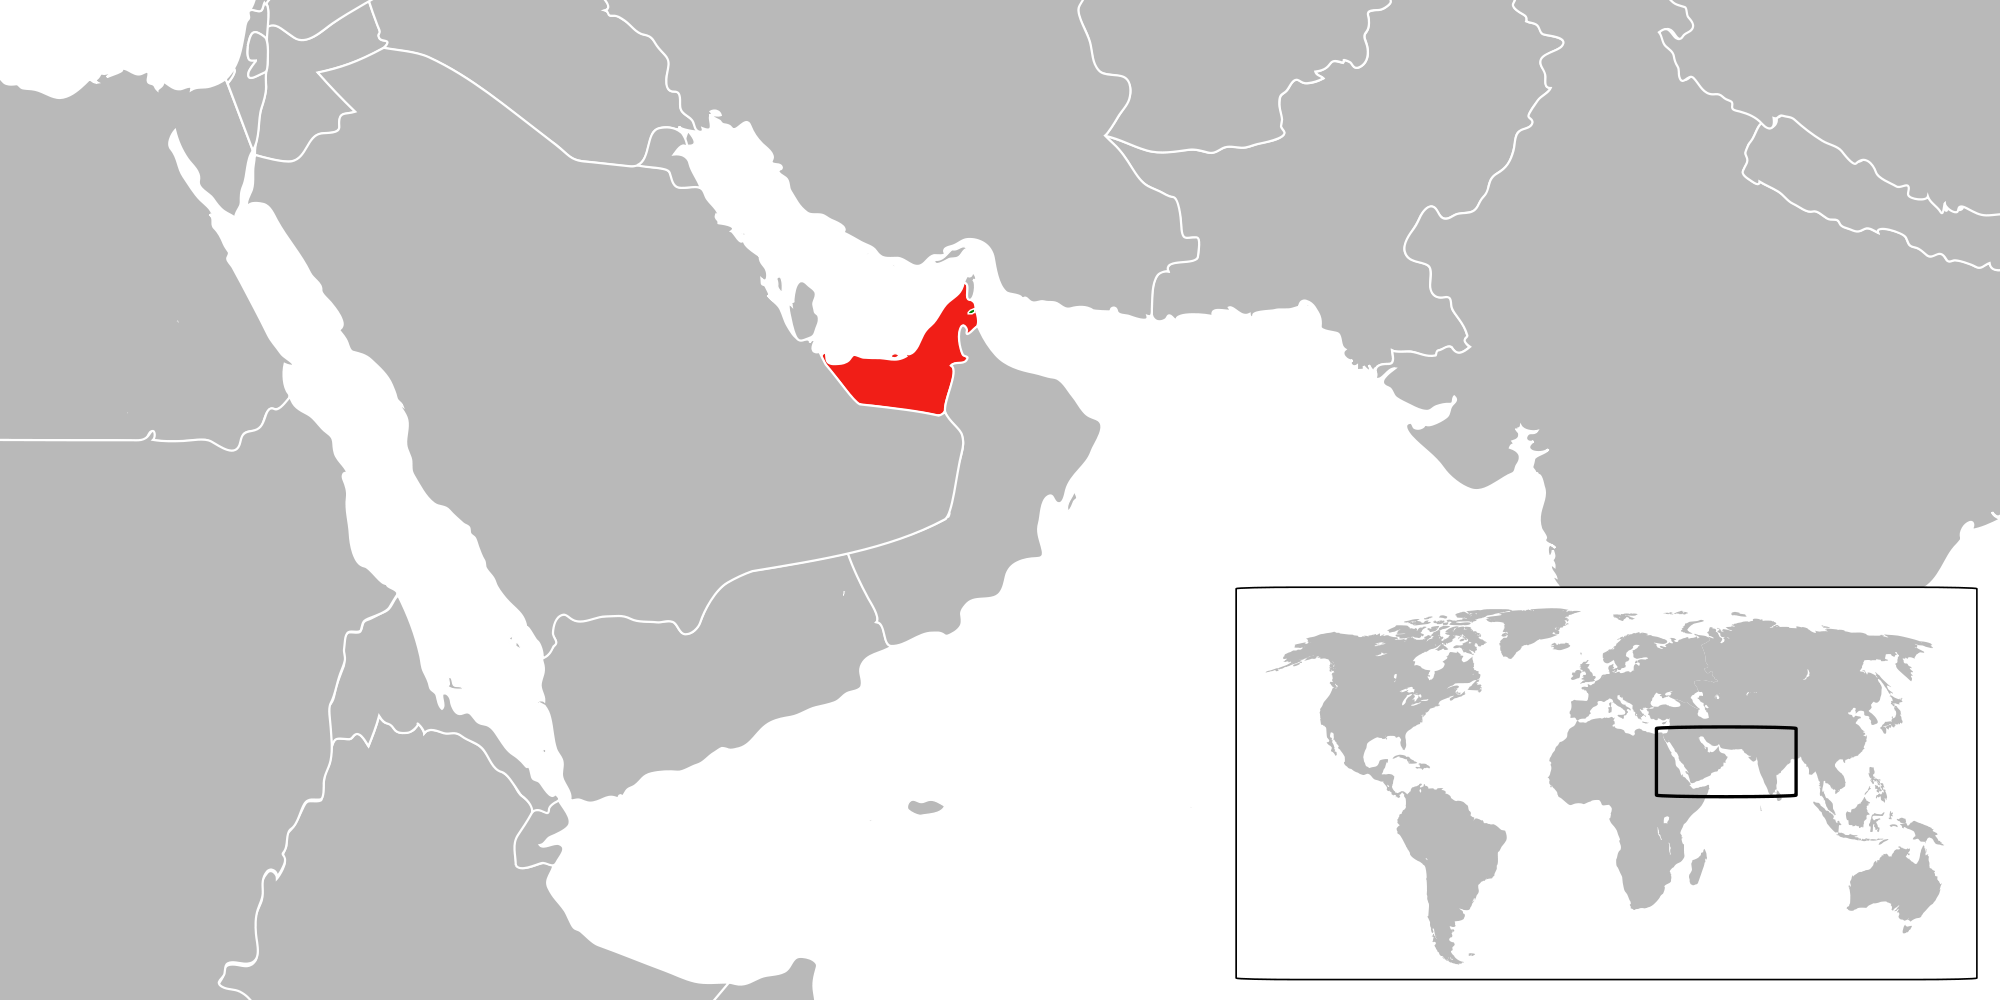 Location of the United Arab Emirates in the World Map